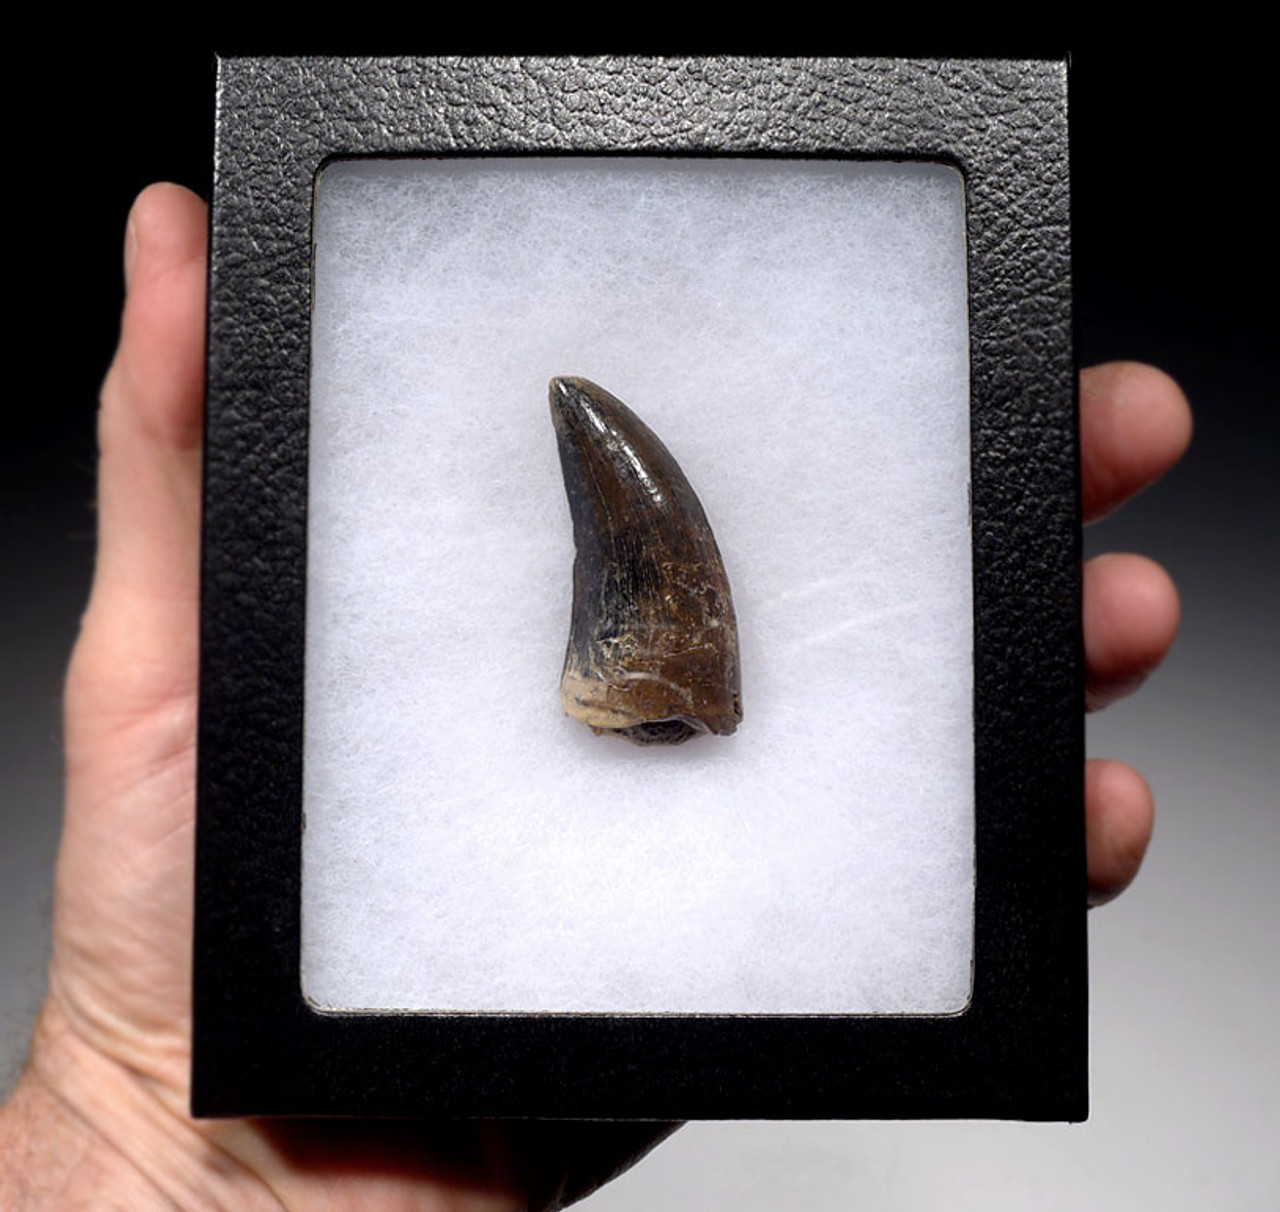 UNIQUELY COLORED TYRANNOSAURUS REX 2.3 INCH TOOTH WITH NO REPAIR OR RESTORATION -DT18-103